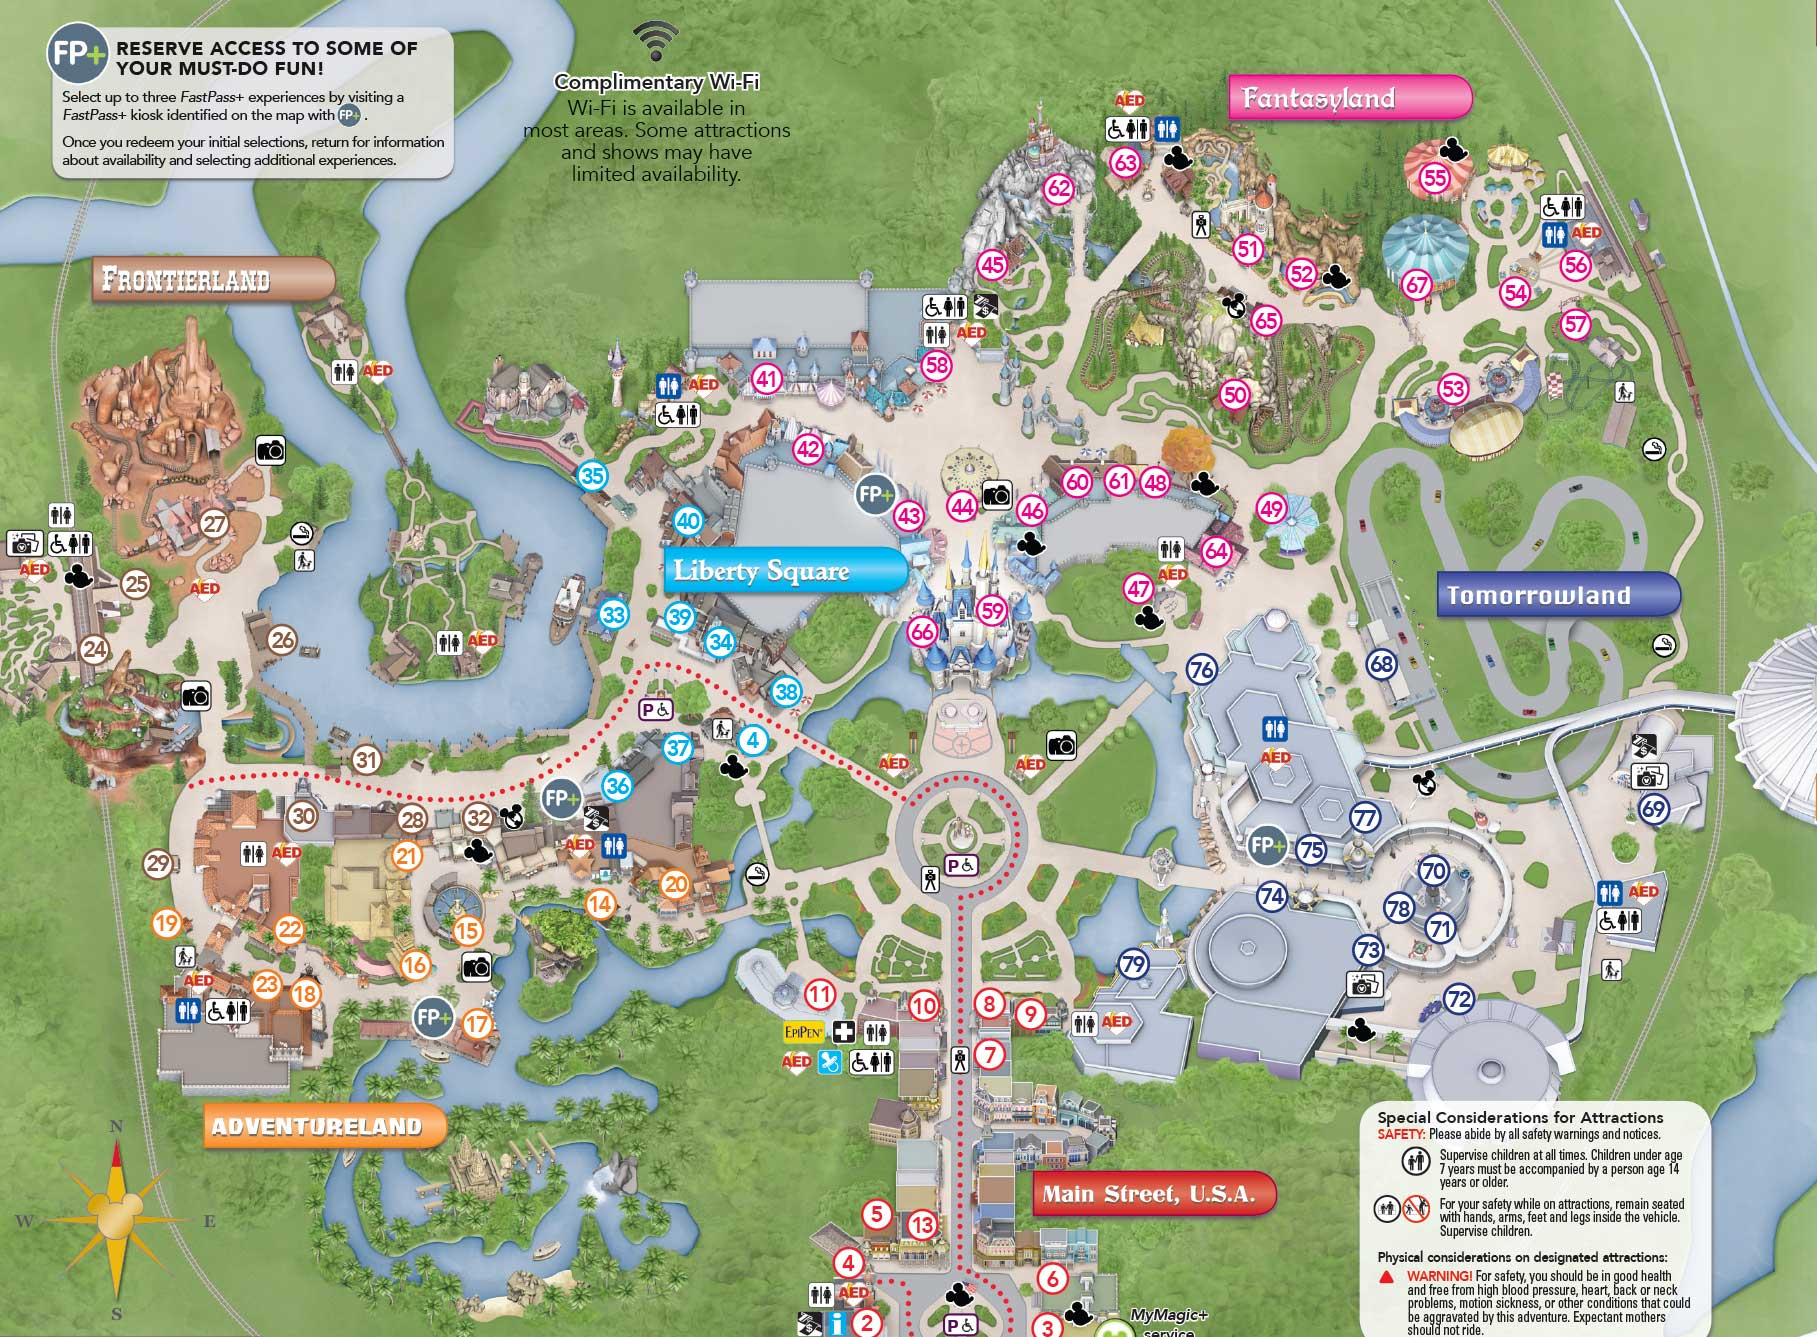 New magic kingdom guide map shows new plaza gardens photo 2 of 2 gumiabroncs Choice Image